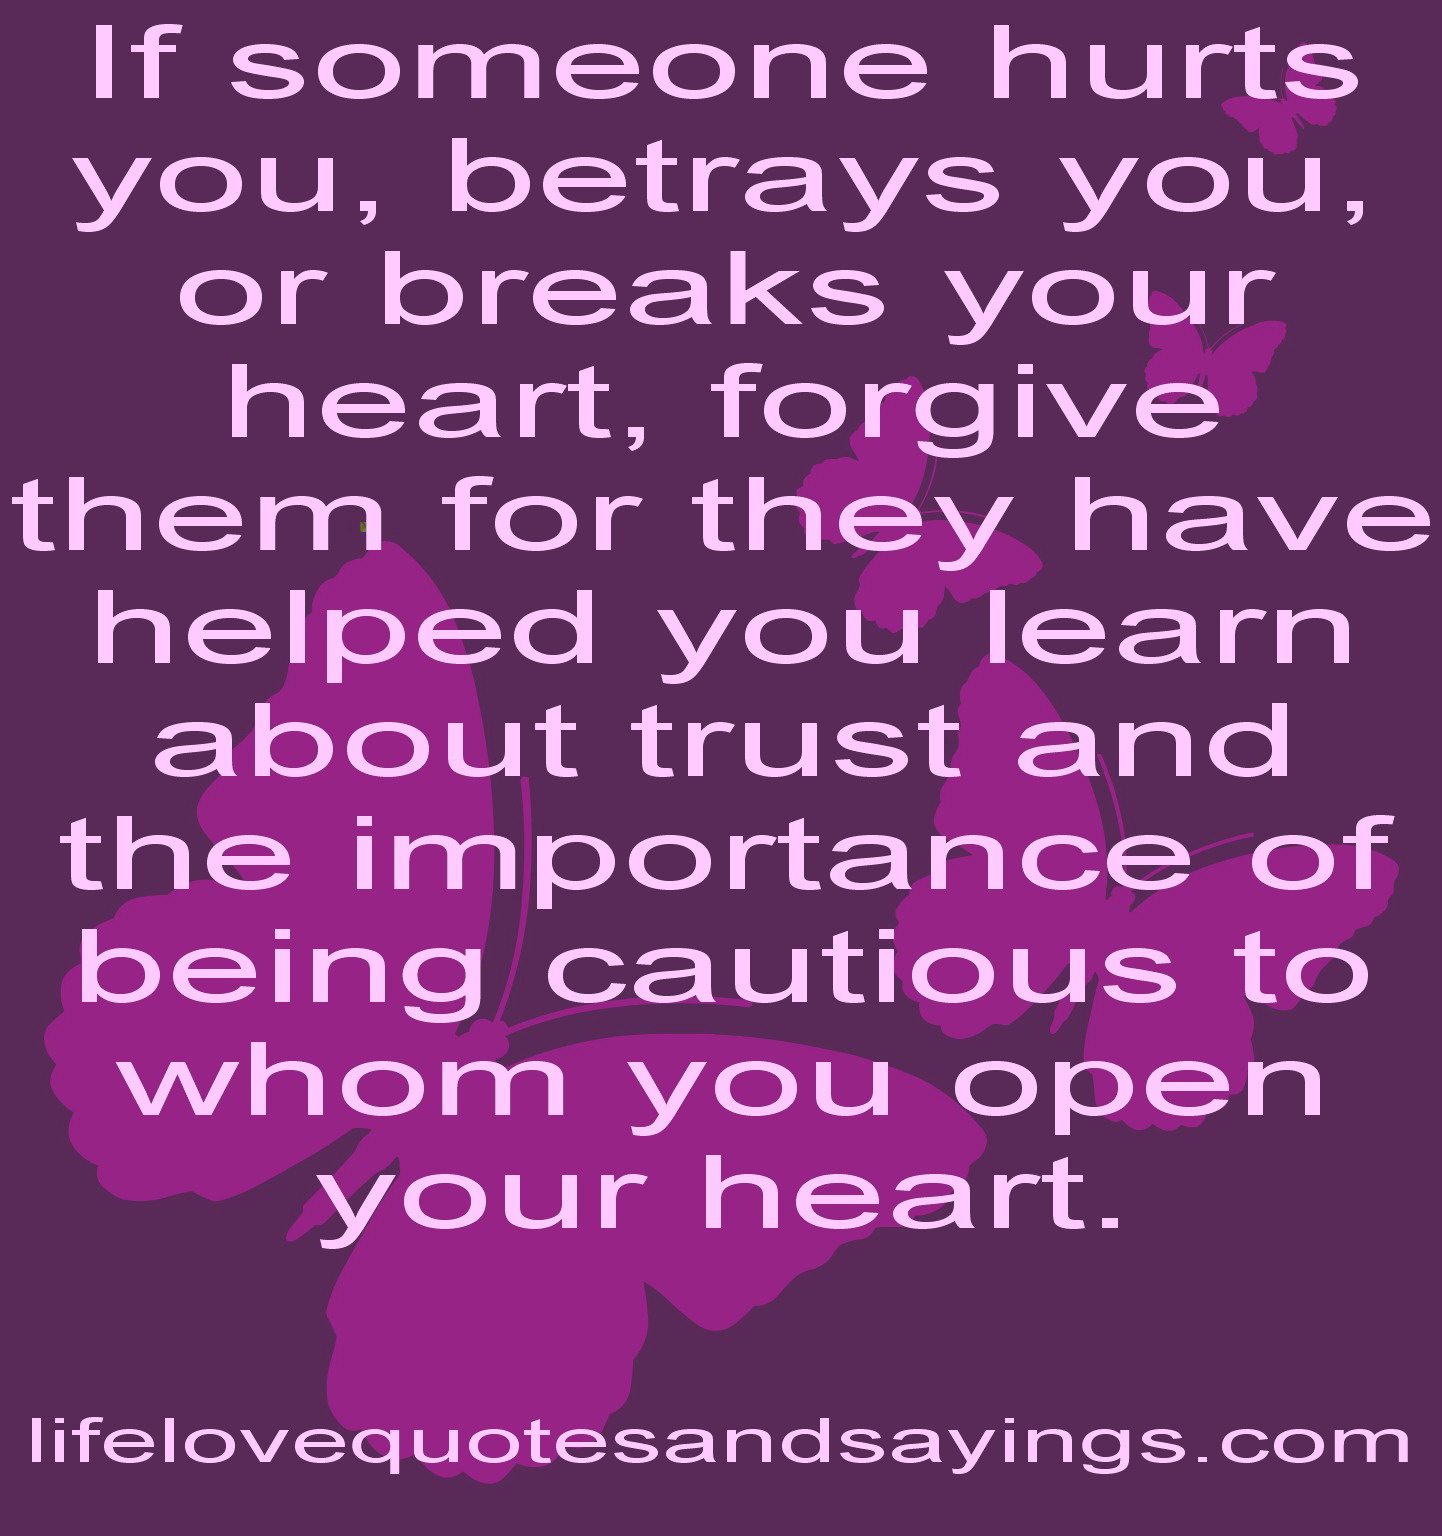 Quotes For Being Hurt By Someone You Love: Quotes About Being Hurt By Someone You Love. QuotesGram